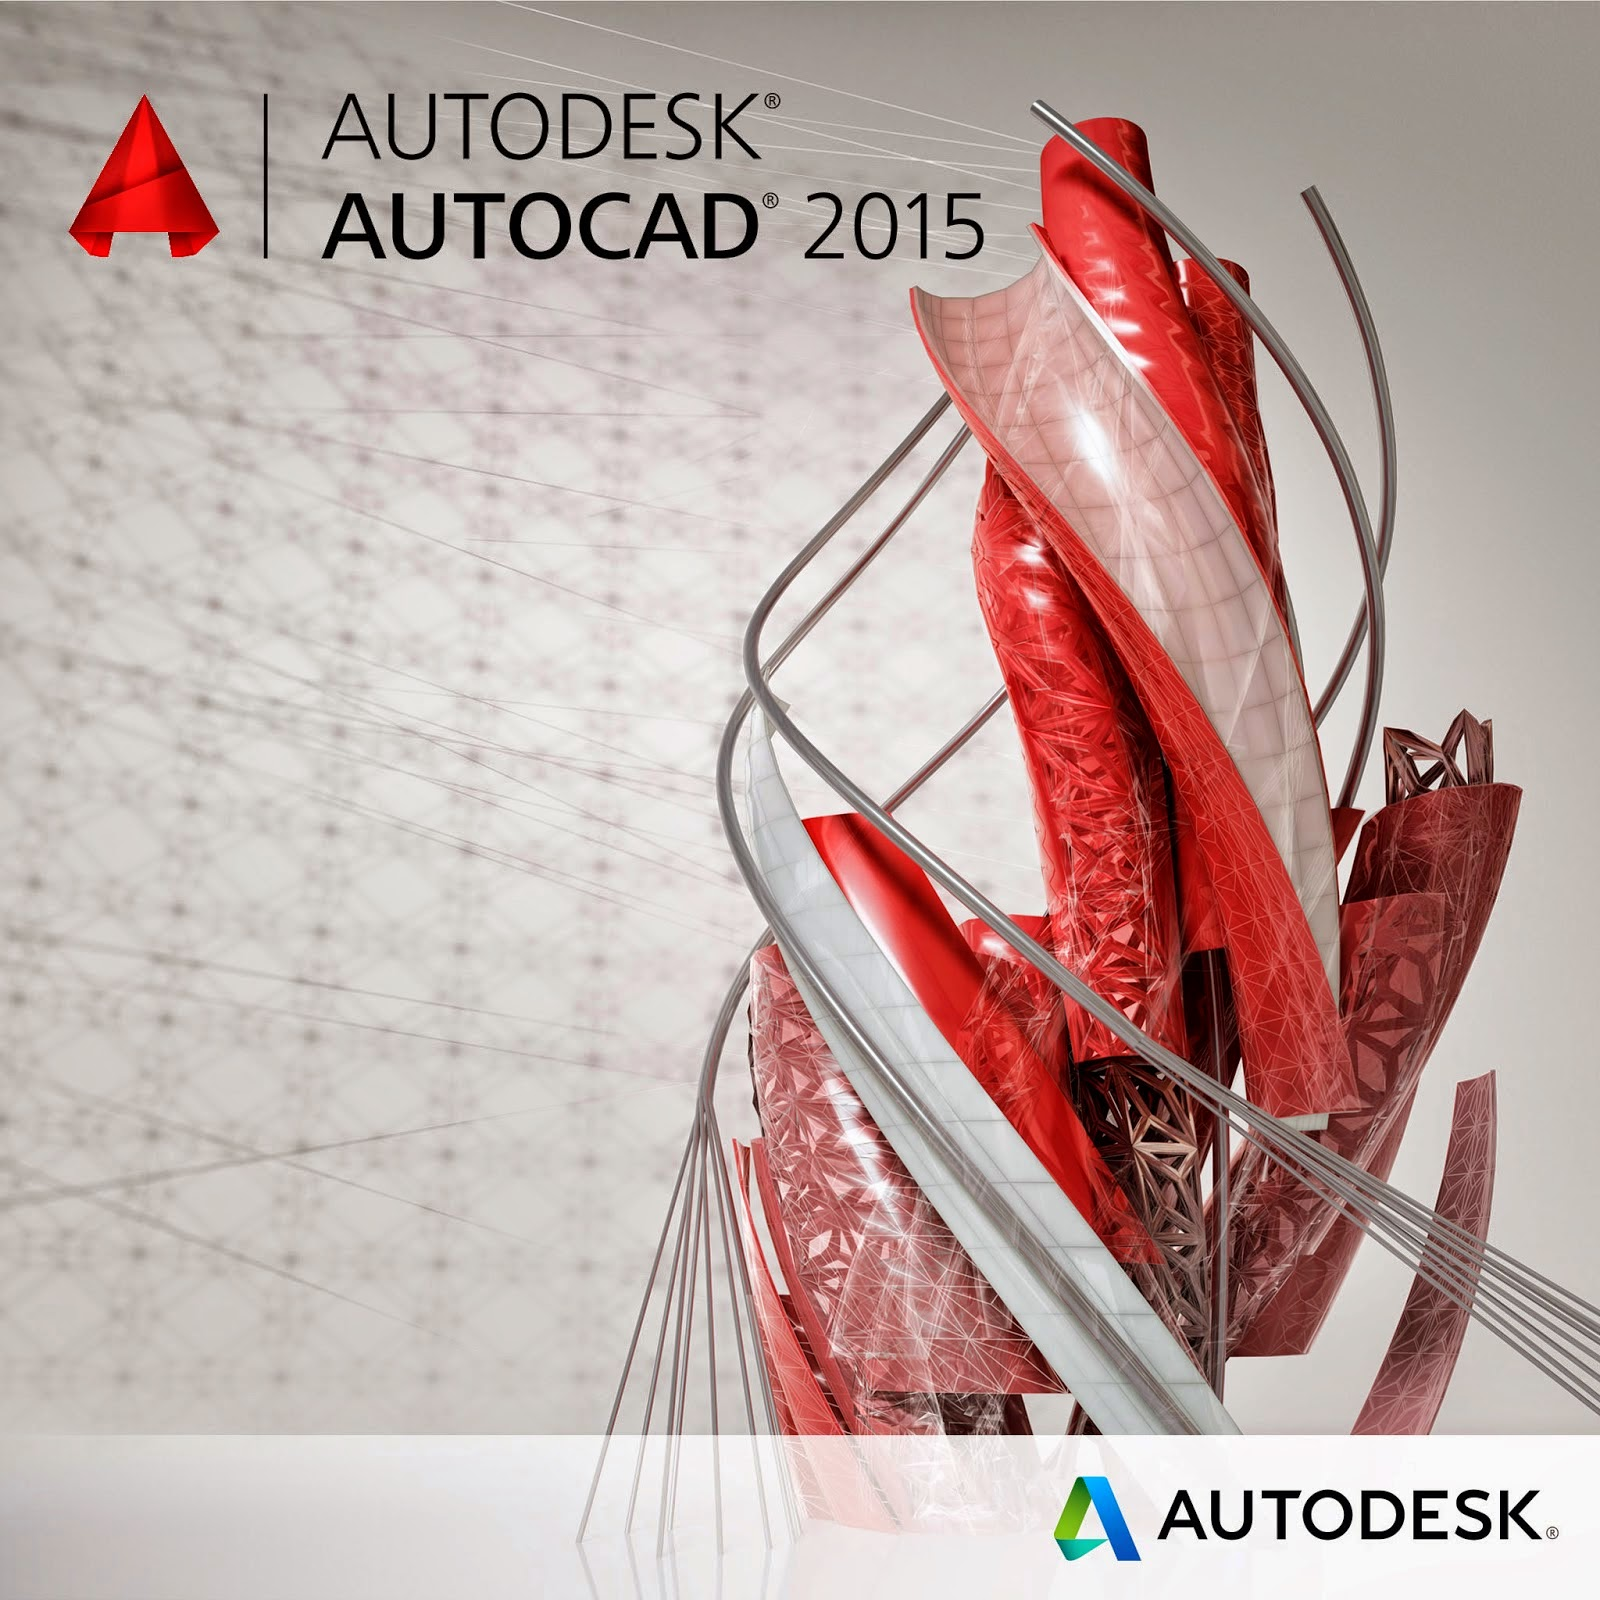 Autodesk AutoCAD 2019 x86/x64 Full with Crack Free Download